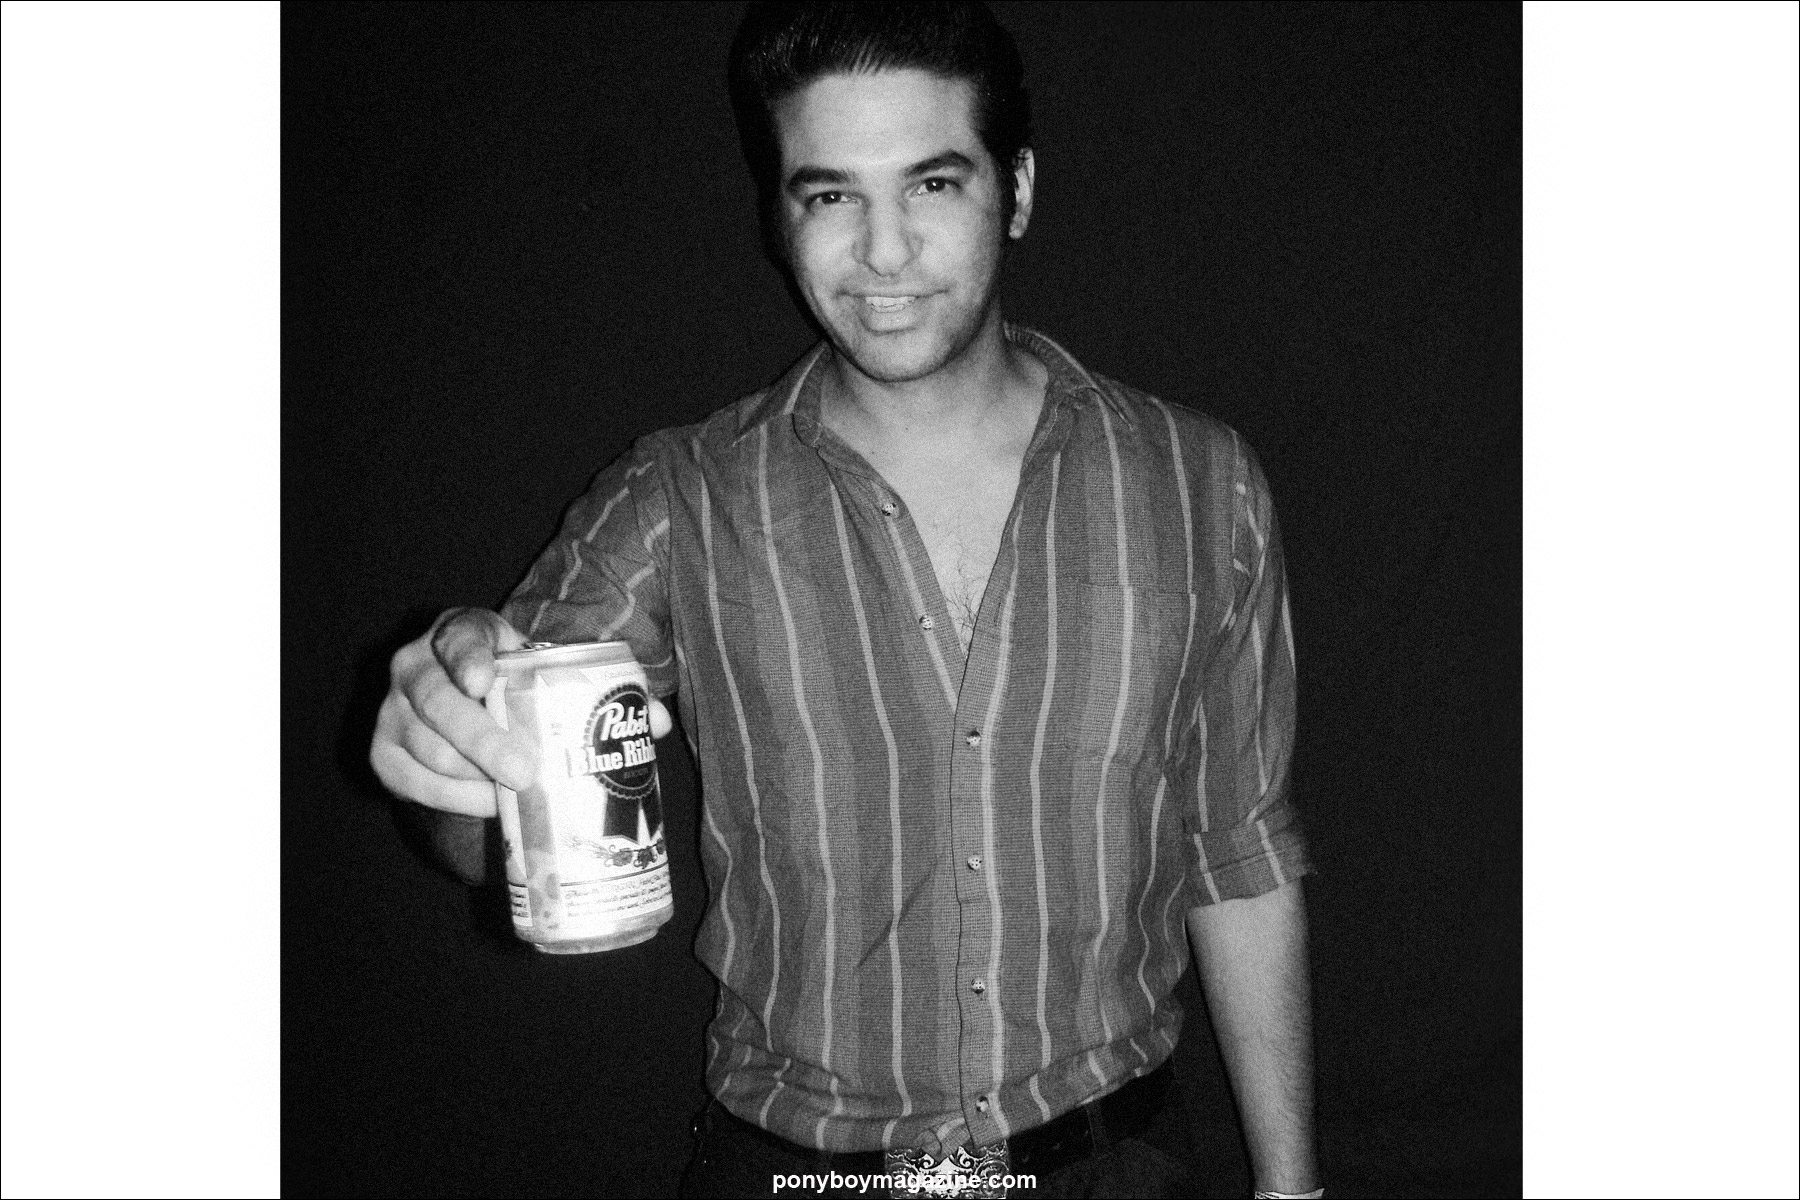 Rockabilly artist Bloodshot Bill, photographed with a PBR beer. Photograph by Alexander Thompson for Ponyboy Magazine in New York City.